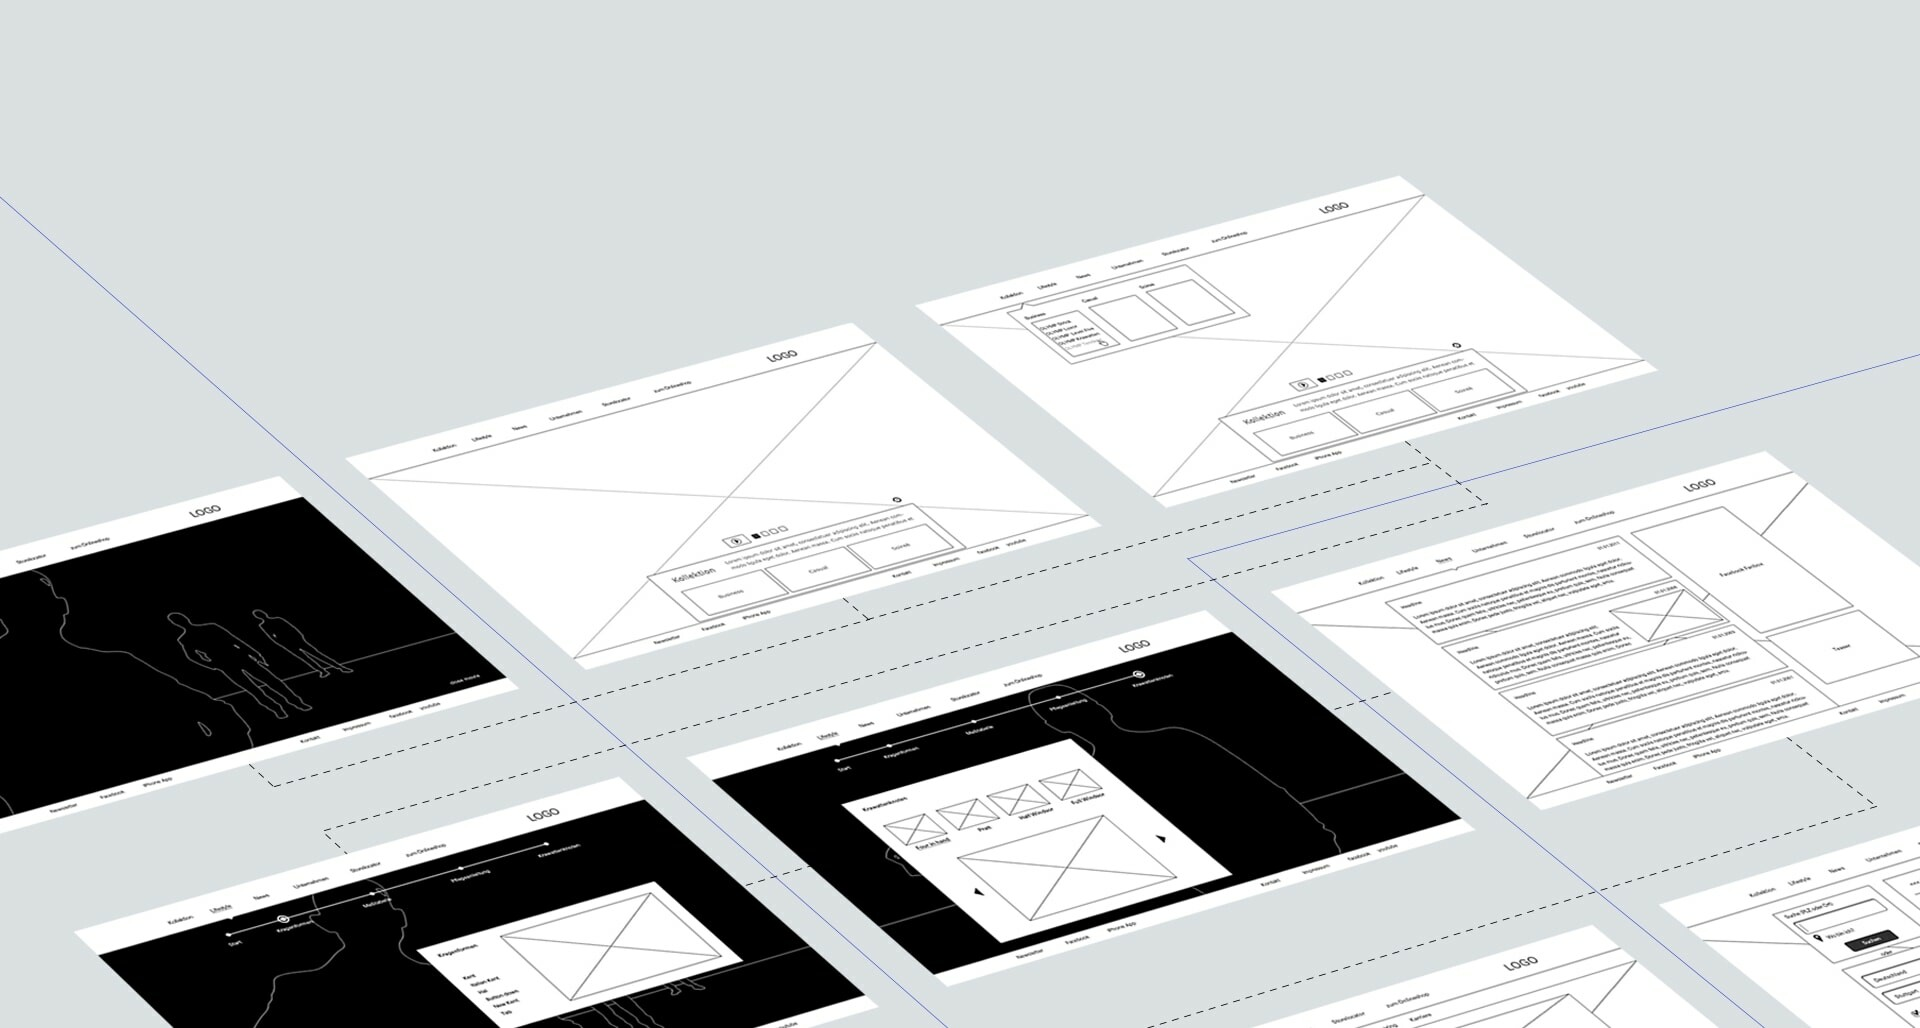 Olymp | User Experience Design - Wireframes